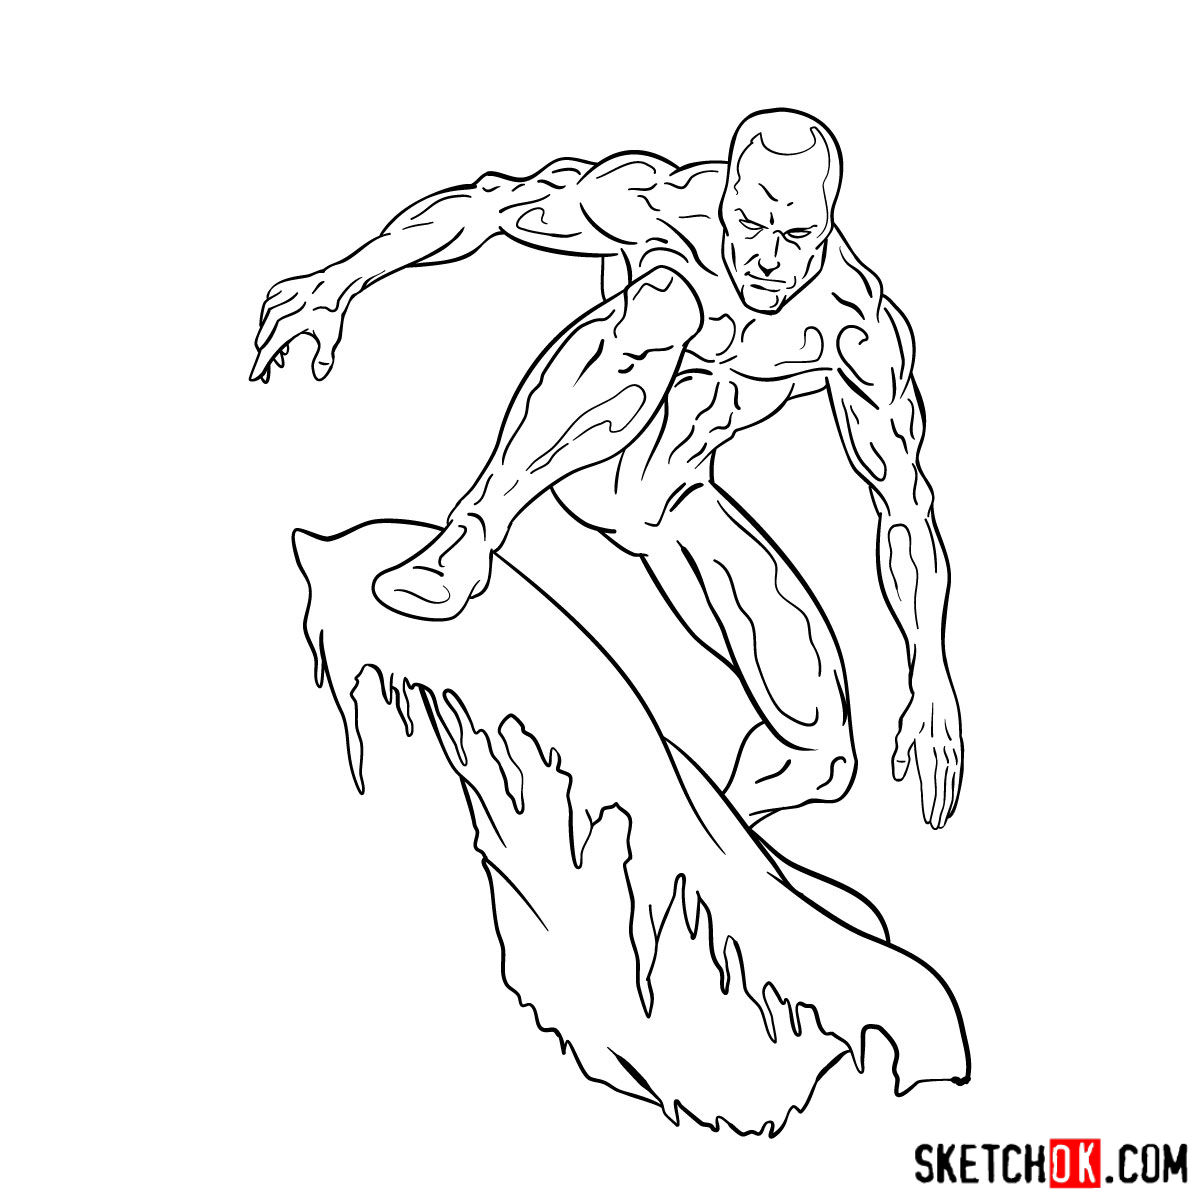 How to draw Iceman - step by step drawing tutorial - step 16